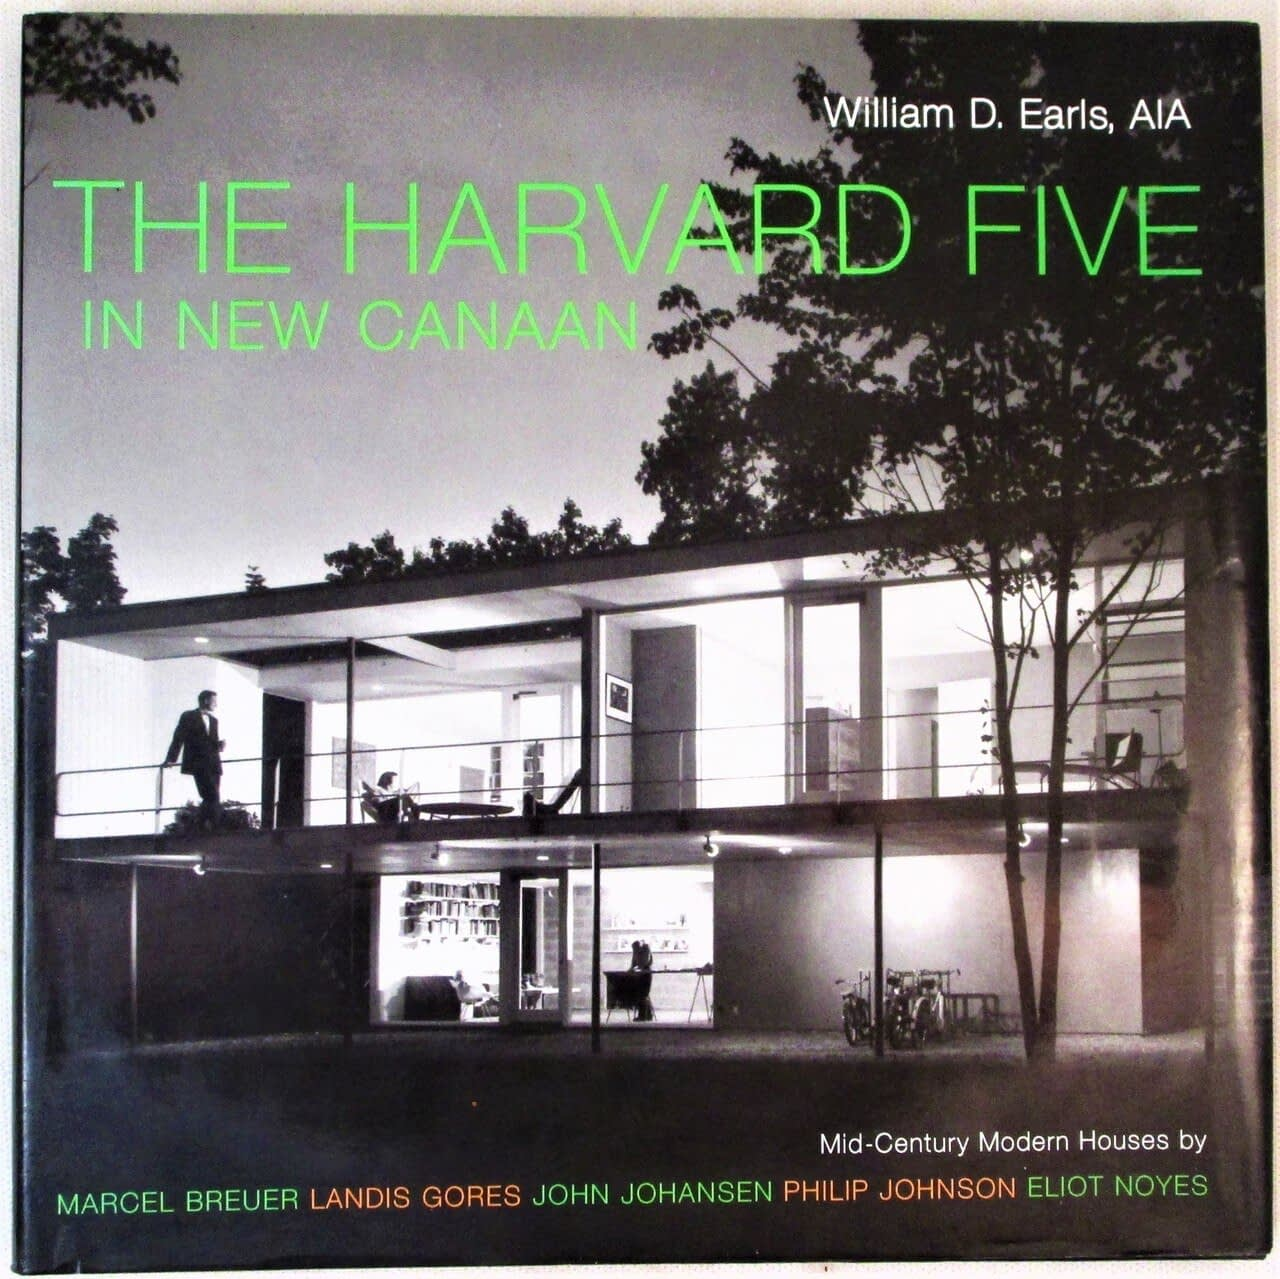 The Harvard Five book cover